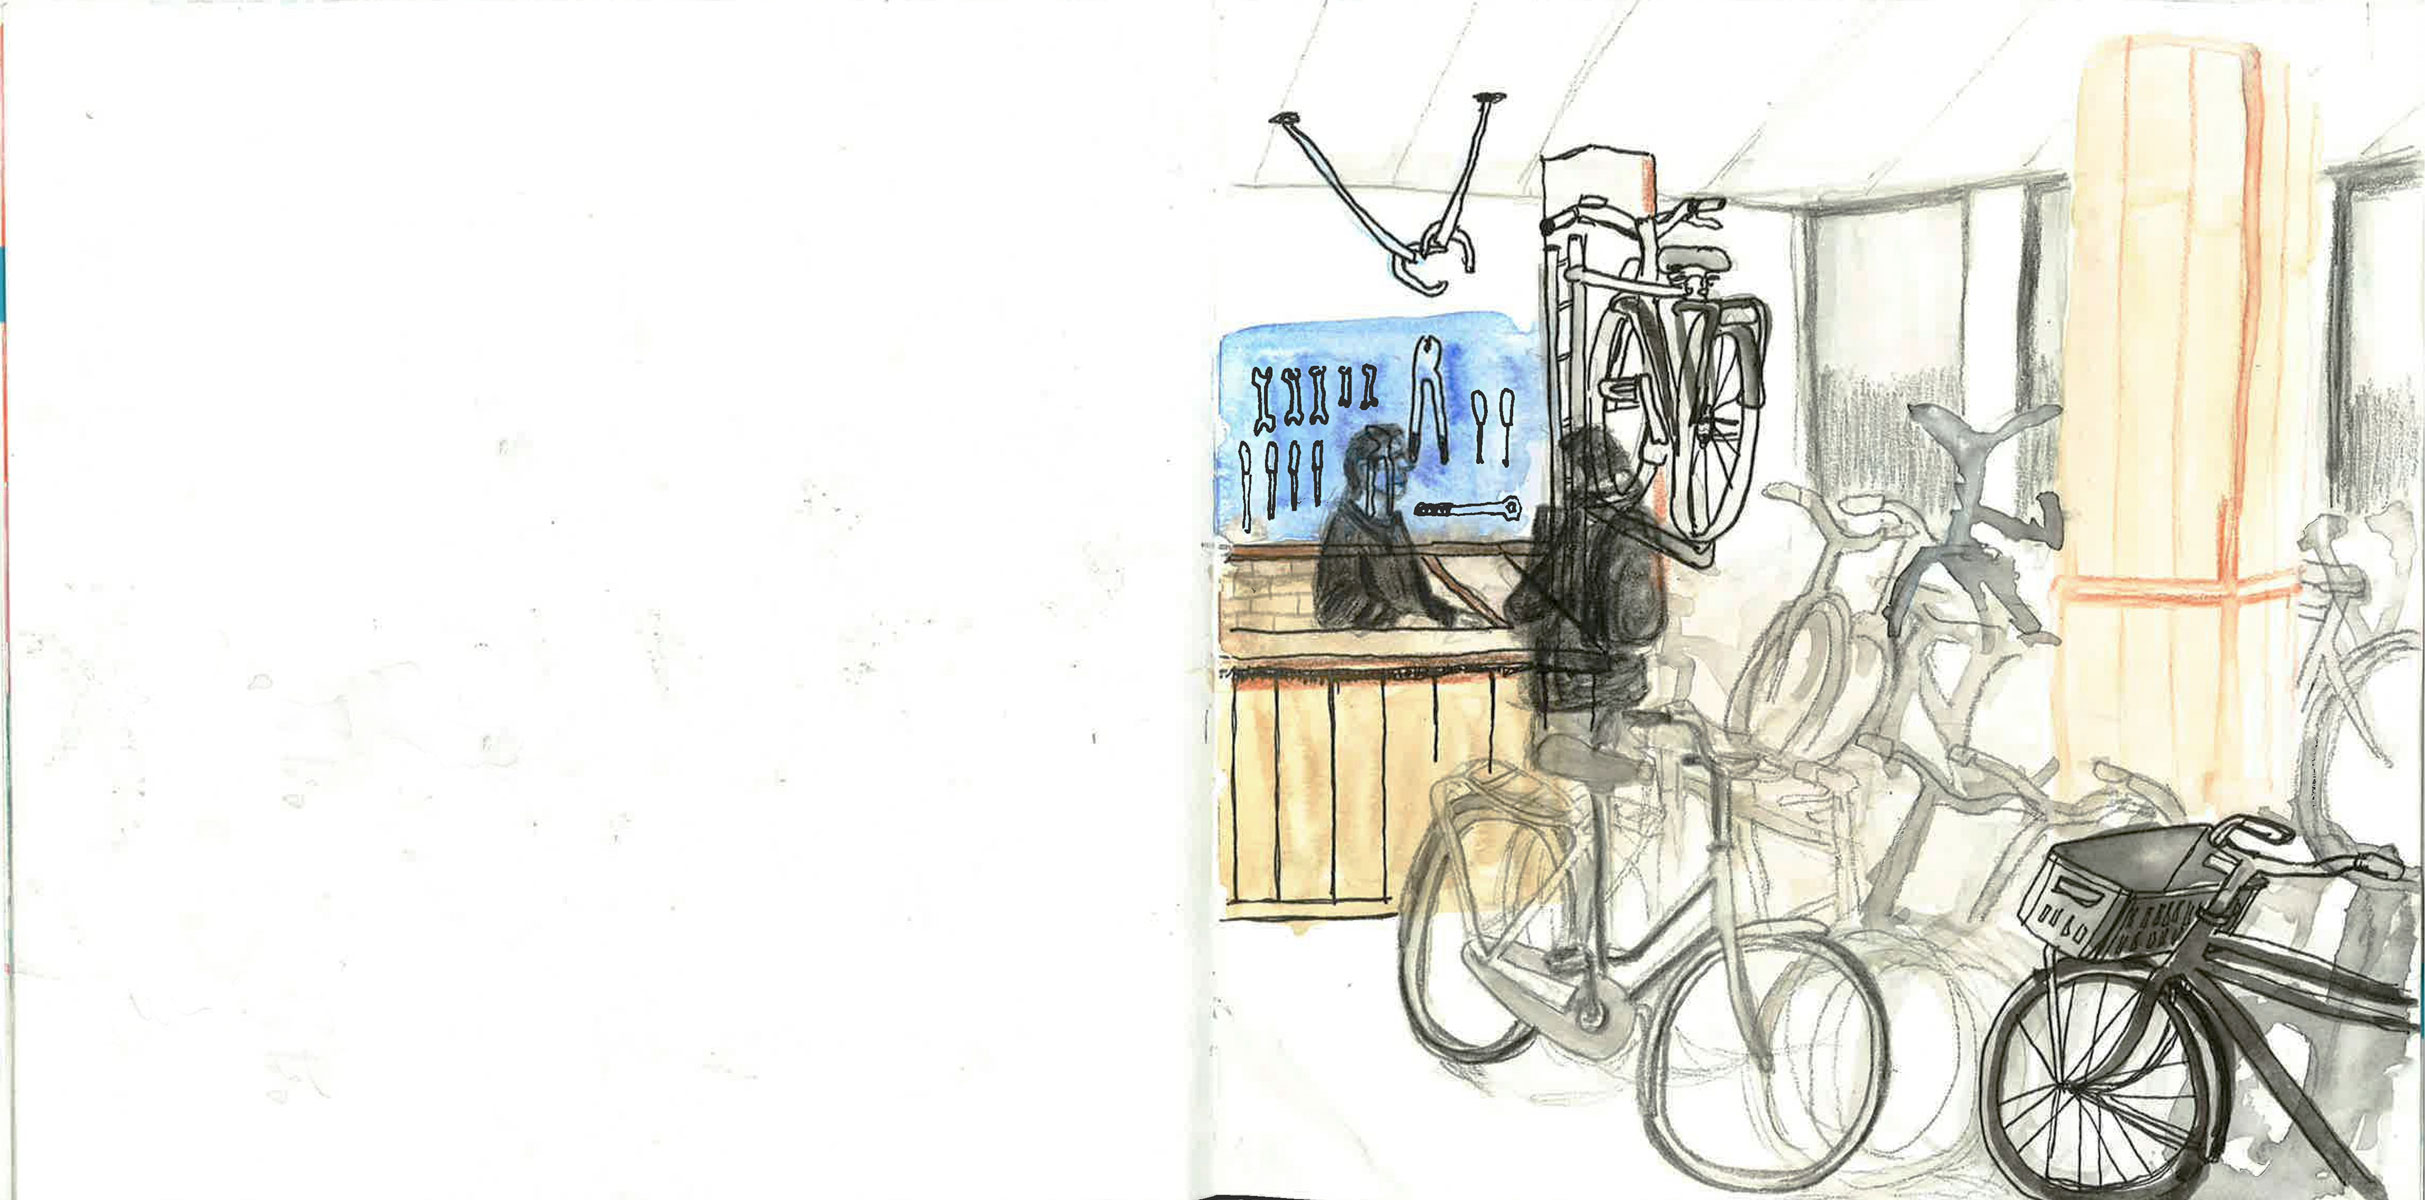 sketch of bike repair shop by ellen vesters illustrator ma childrens book illustration